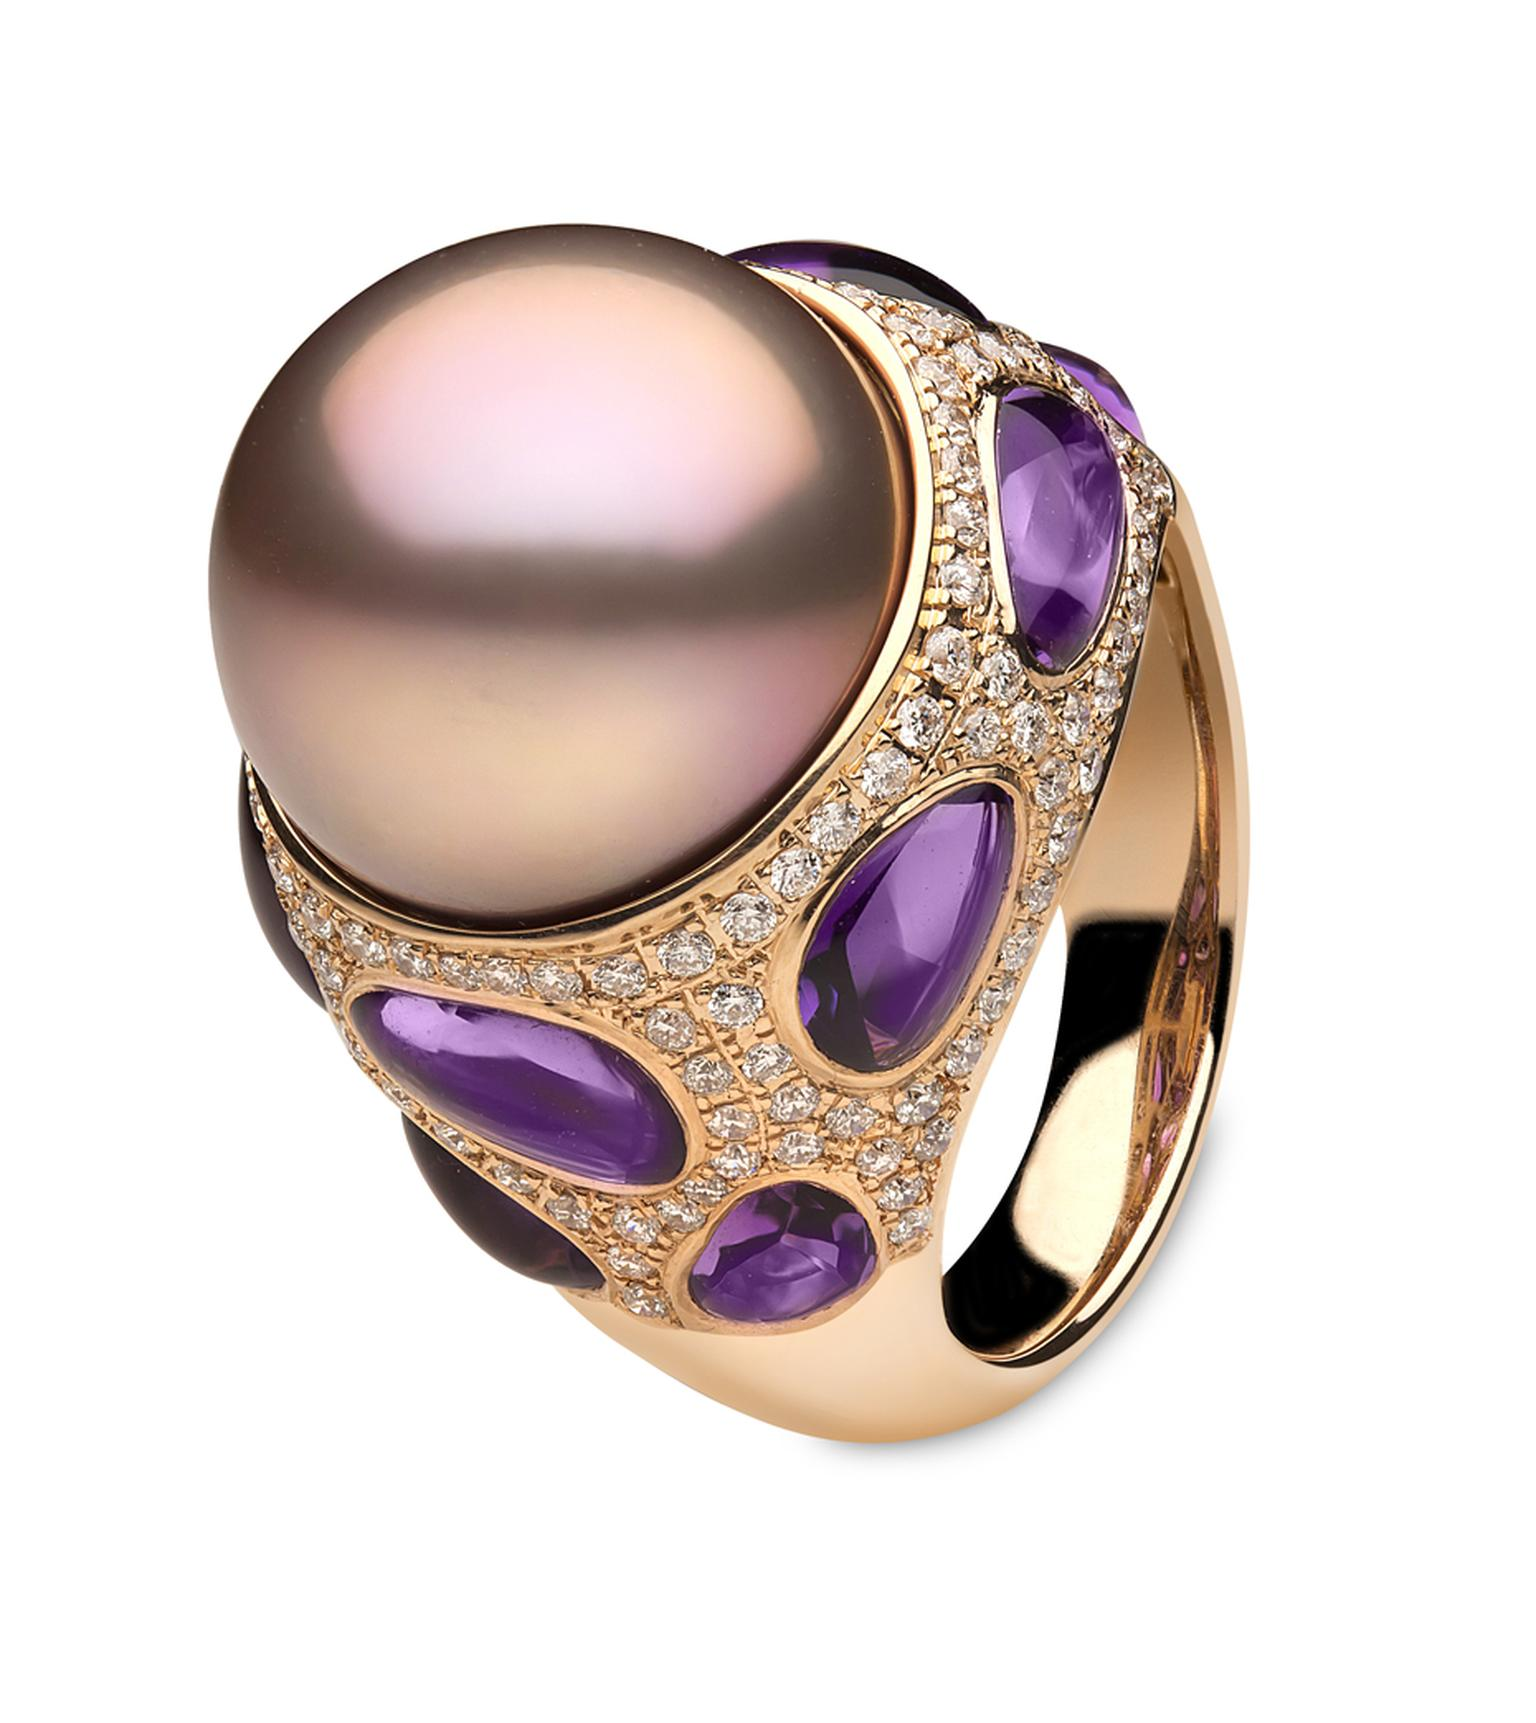 Yoko London Calypso collection rose gold ring featuring a pink freshwater pearl surrounded by amethysts and diamonds